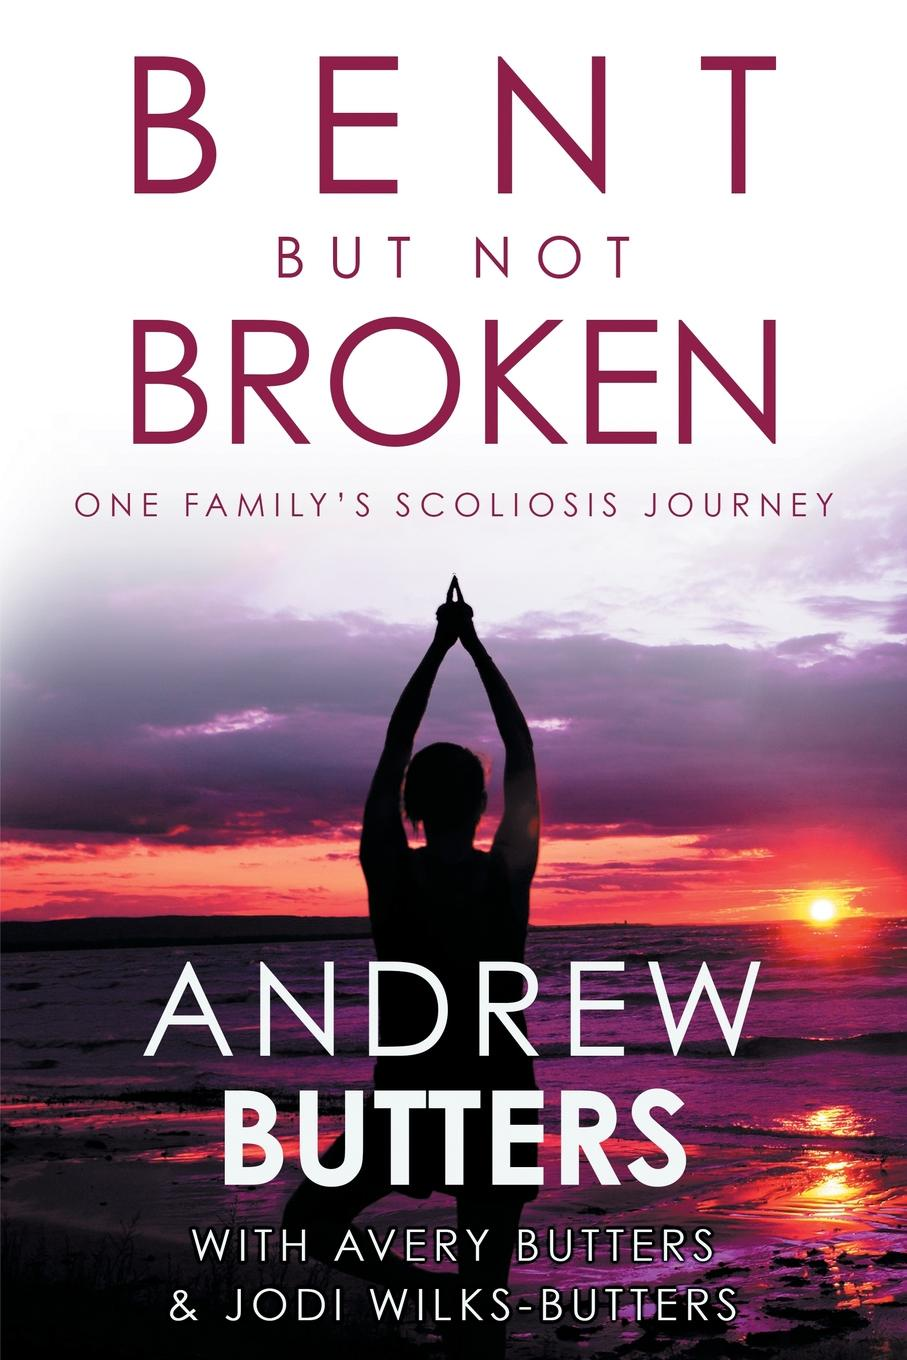 Andrew Butters, Avery Butters, Jodi Wilks-Butters Bent But Not Broken. One Family's Scoliosis Journey kaylee berry lifestyle blog planner journal lifestyle blogging content planner never run out of things to blog about again